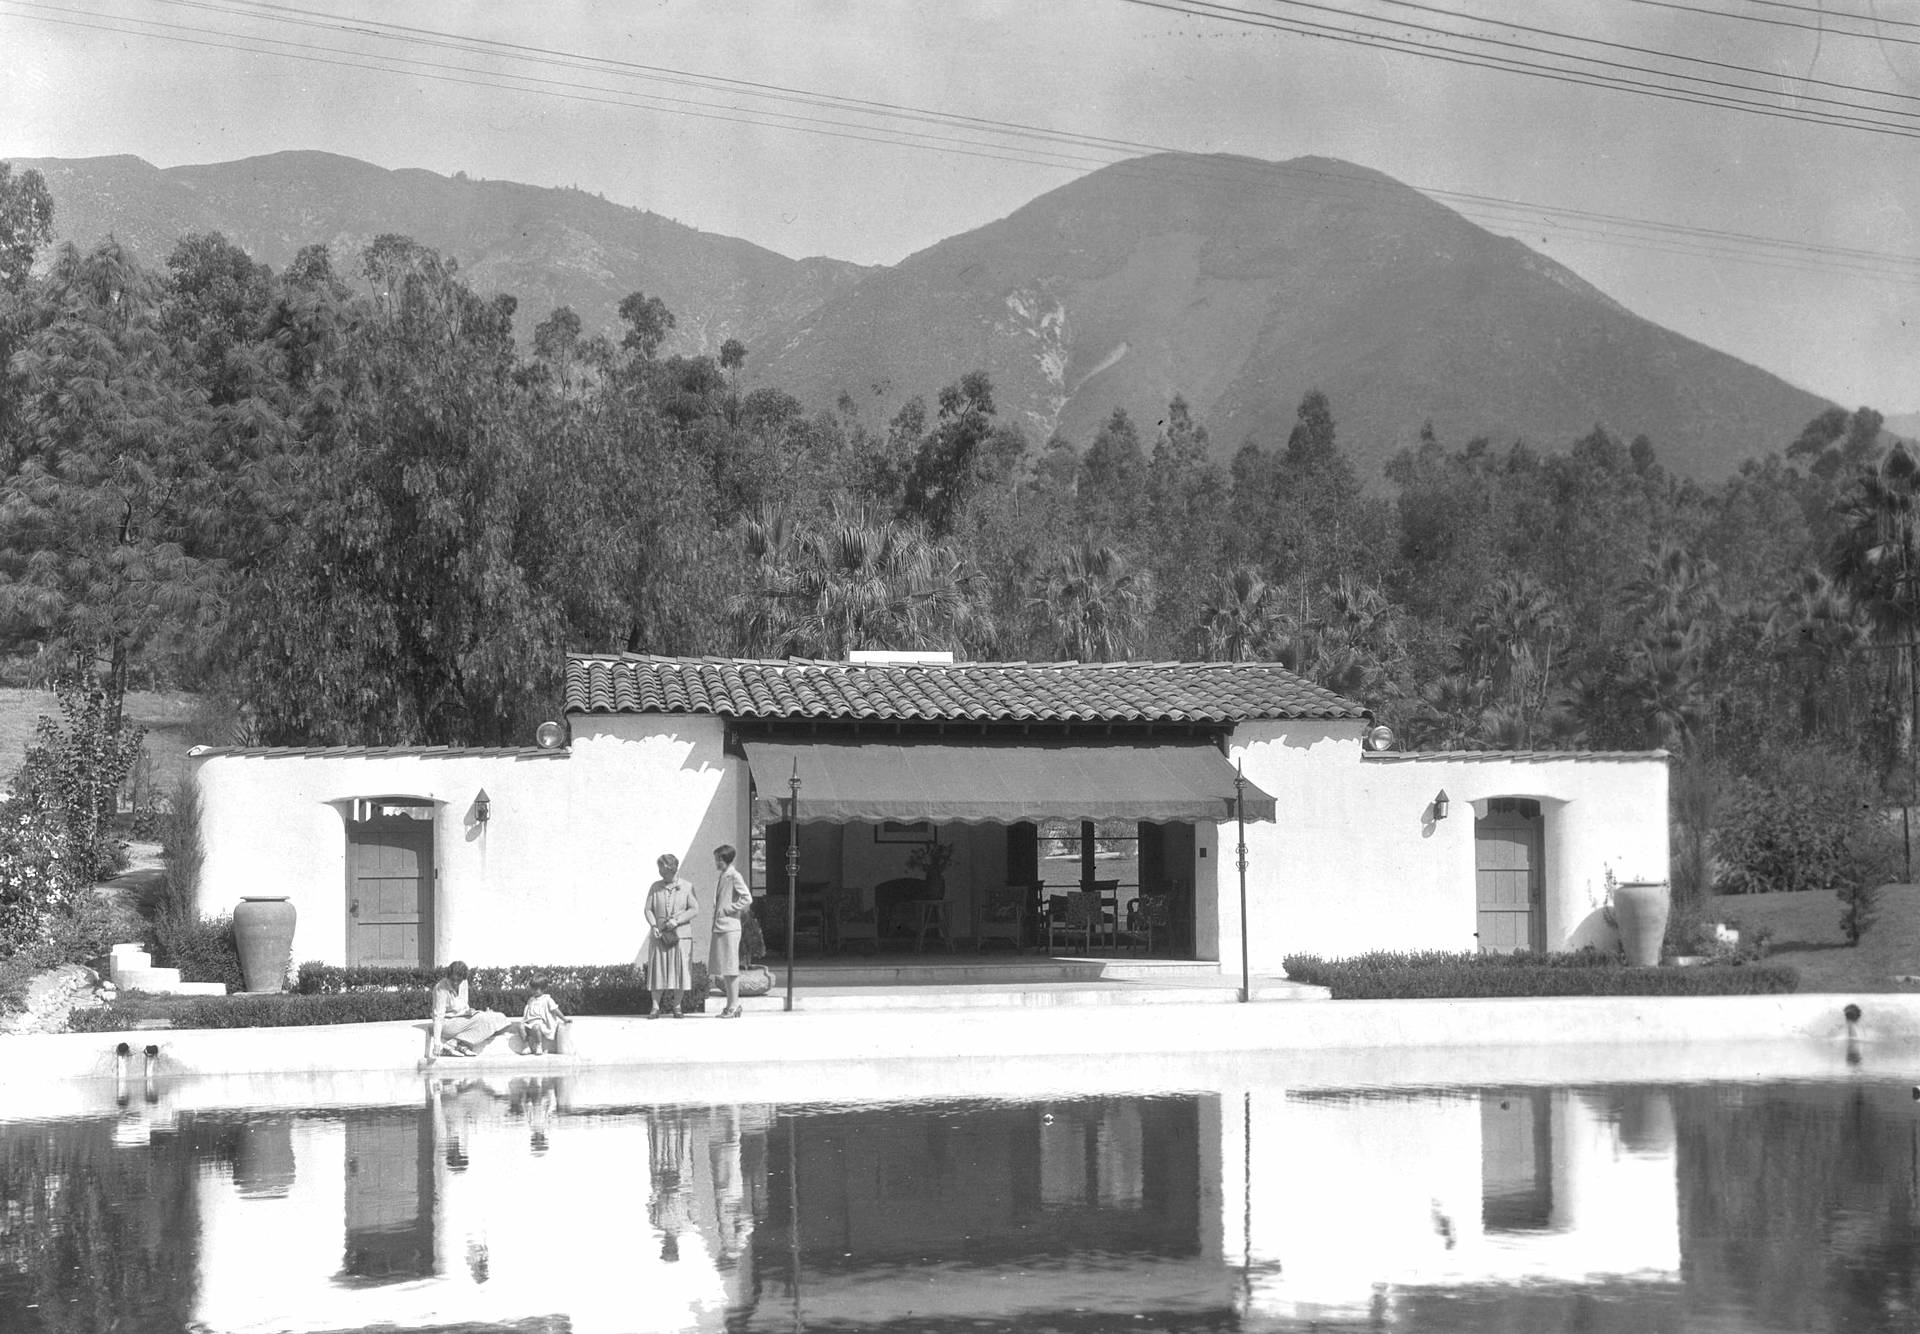 Arrowhead Springs Hotel pool, circa 1925-30